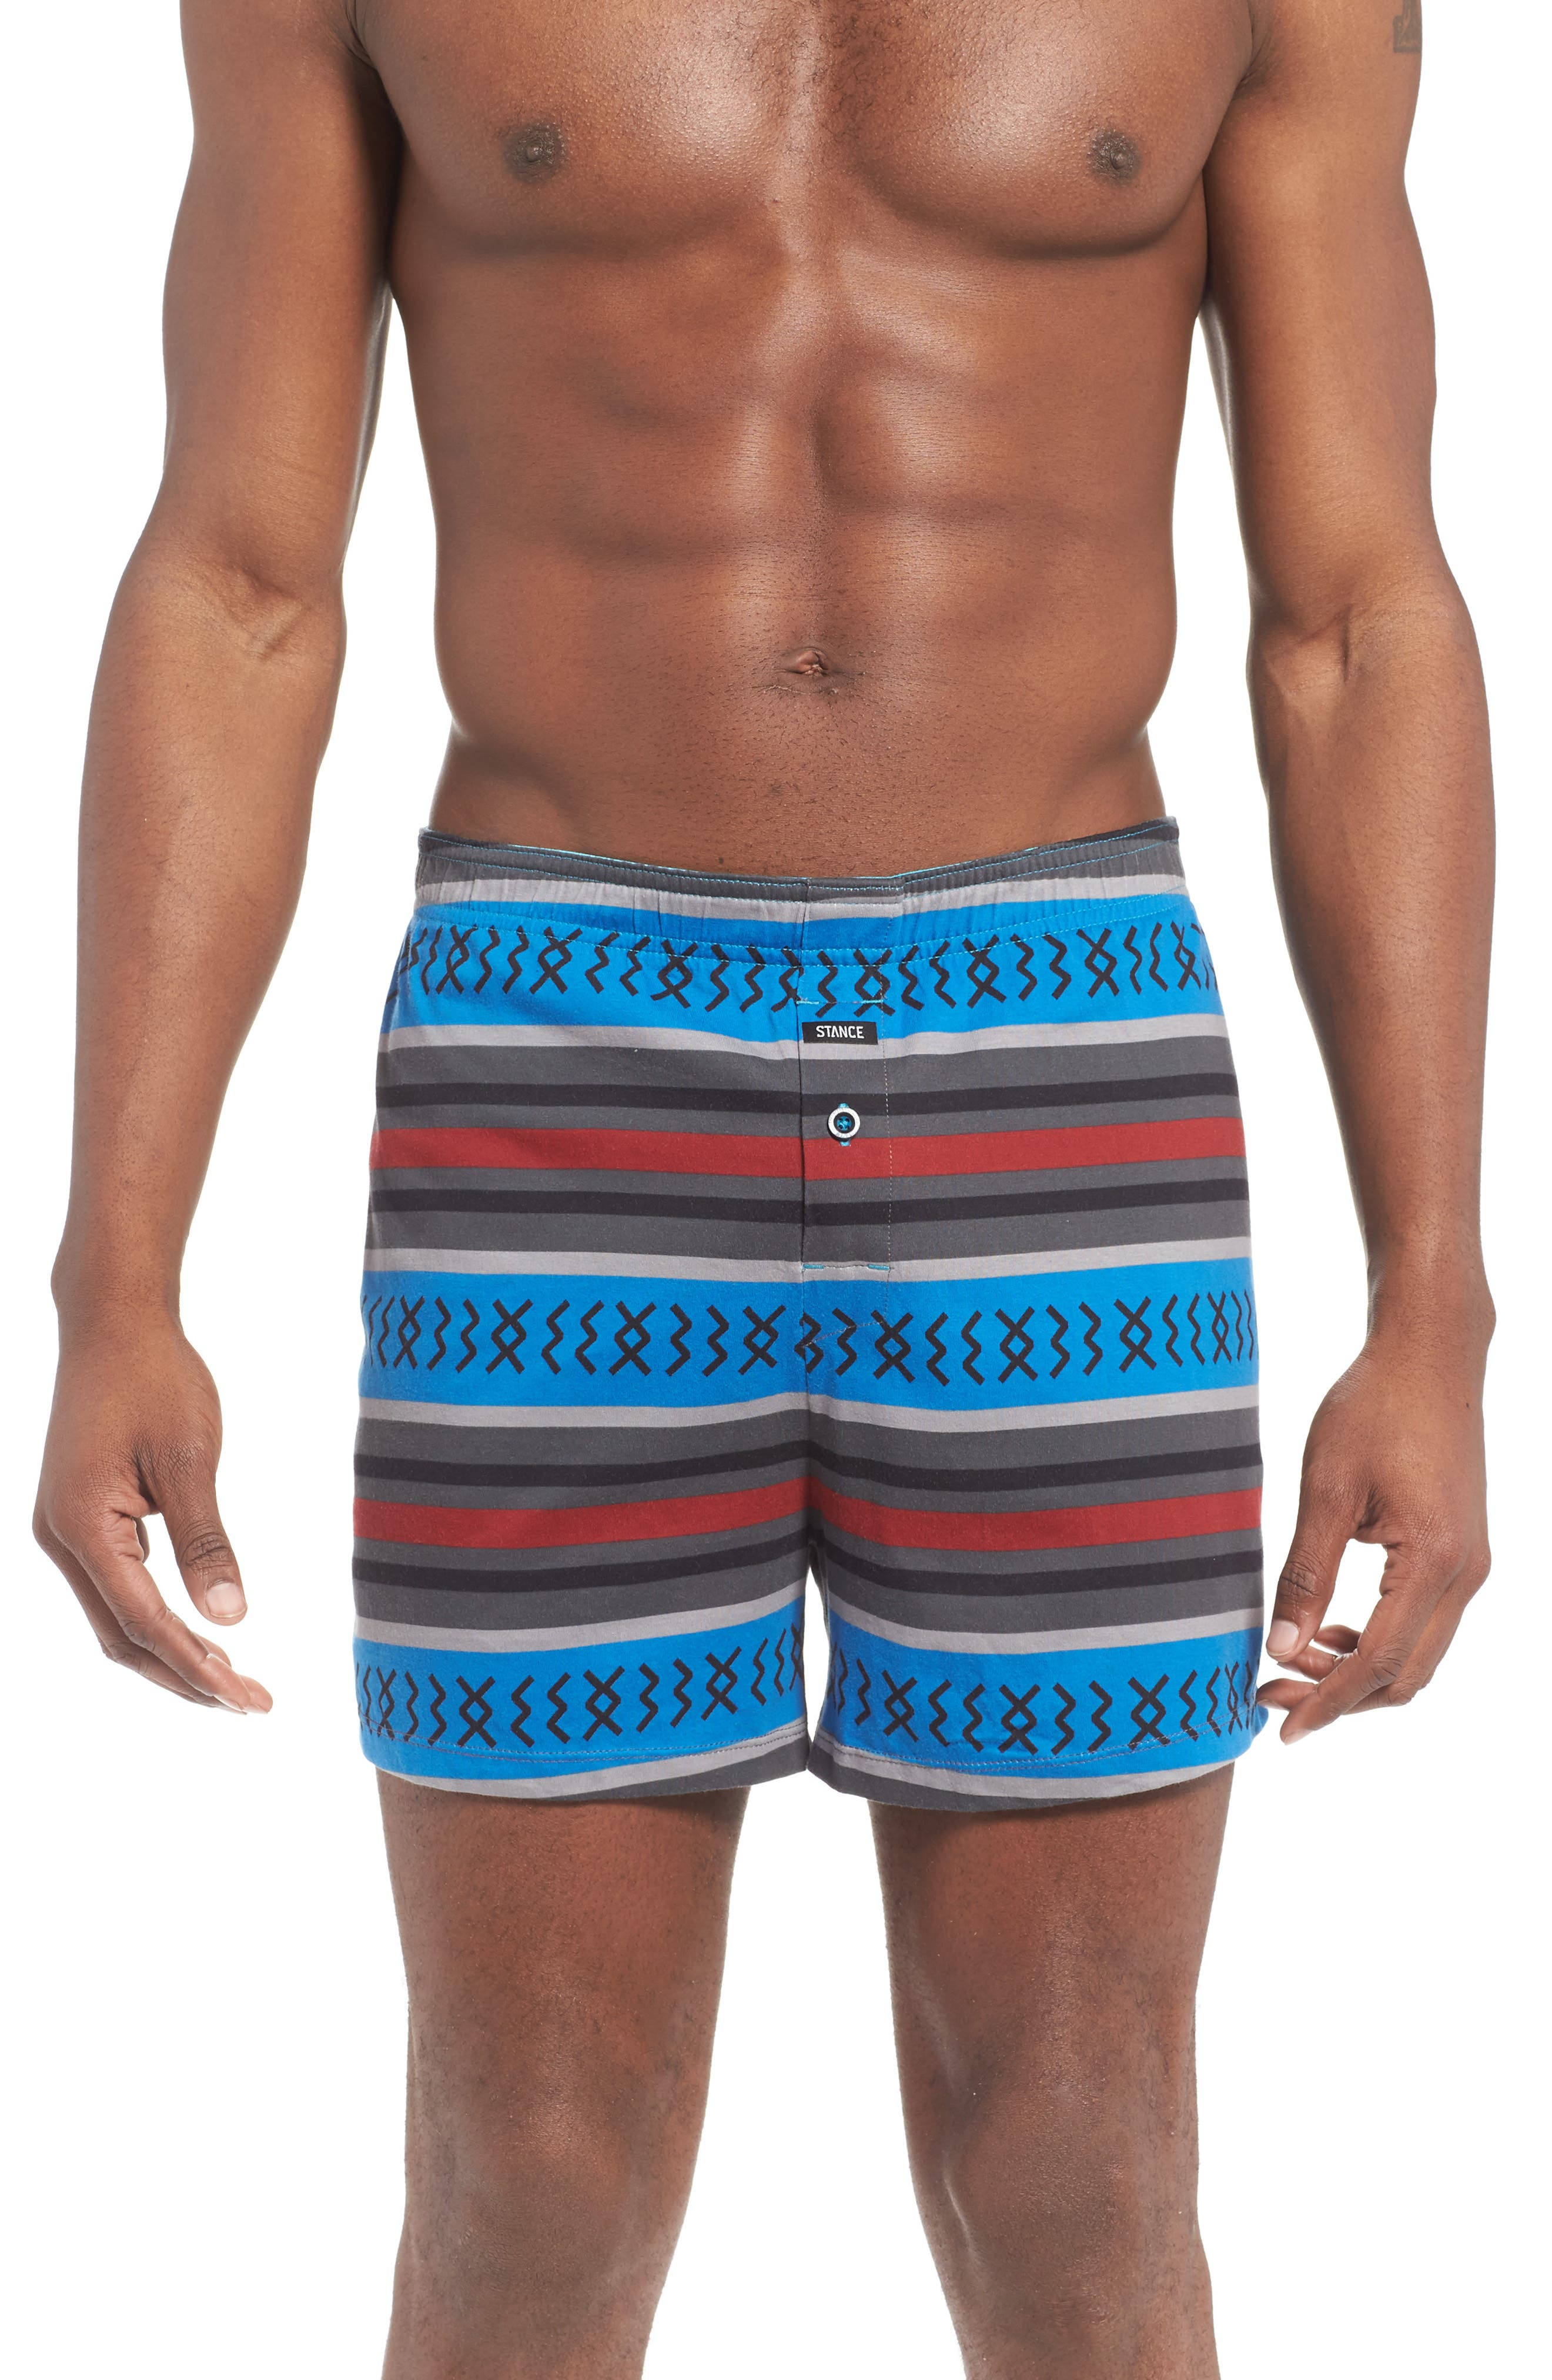 Visita Rune Relaxed Fit Boxer Briefs,                         Main,                         color, Grey